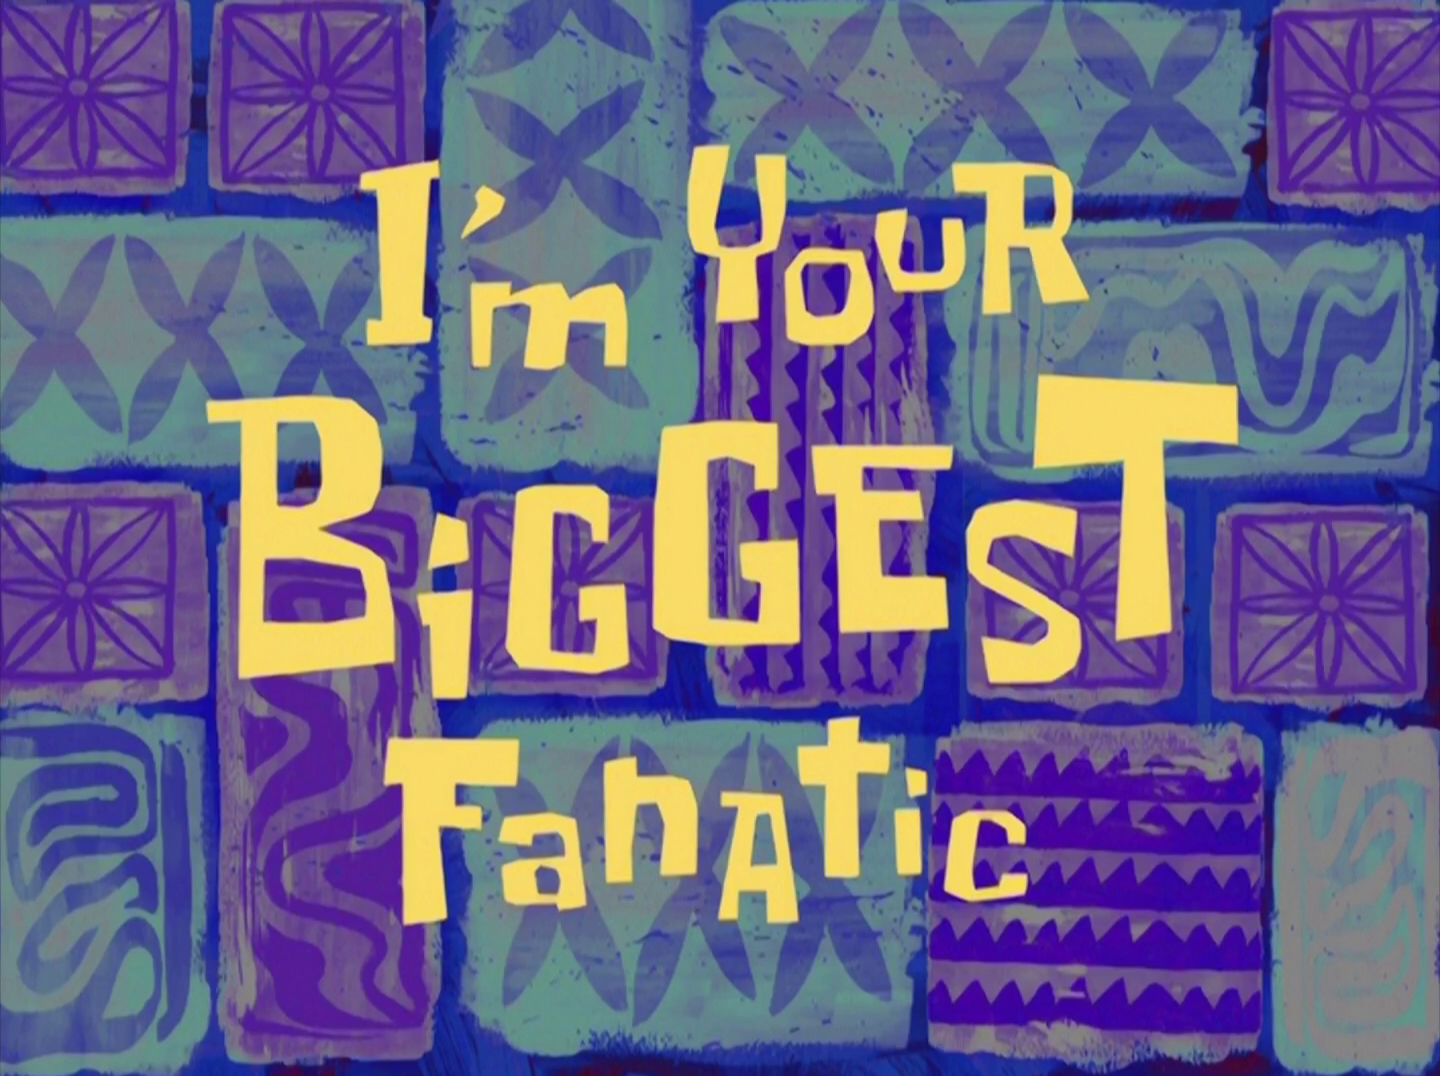 https://vignette.wikia.nocookie.net/spongebob/images/4/41/I%27m_Your_Biggest_Fanatic.png/revision/latest?cb=20140820054744